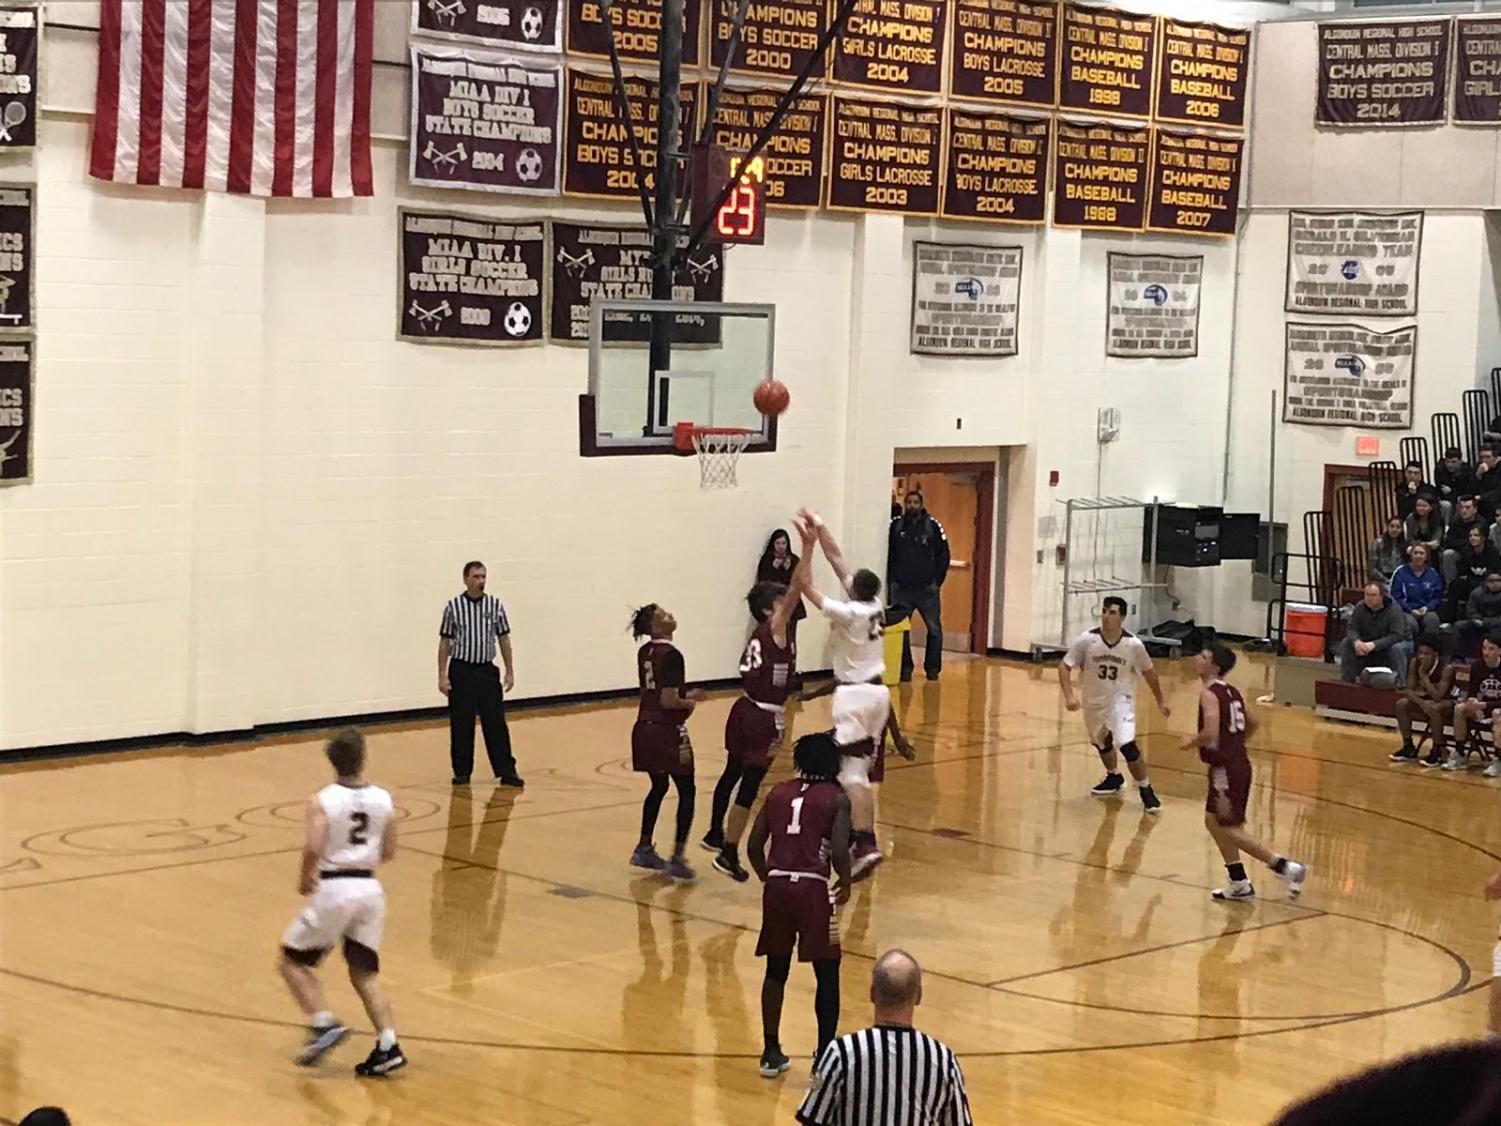 Senior captain Nick Redden shoots in the paint to help the boys' basketball team beat Doherty 66-60 on December 7.  Redden finished with 17 points.